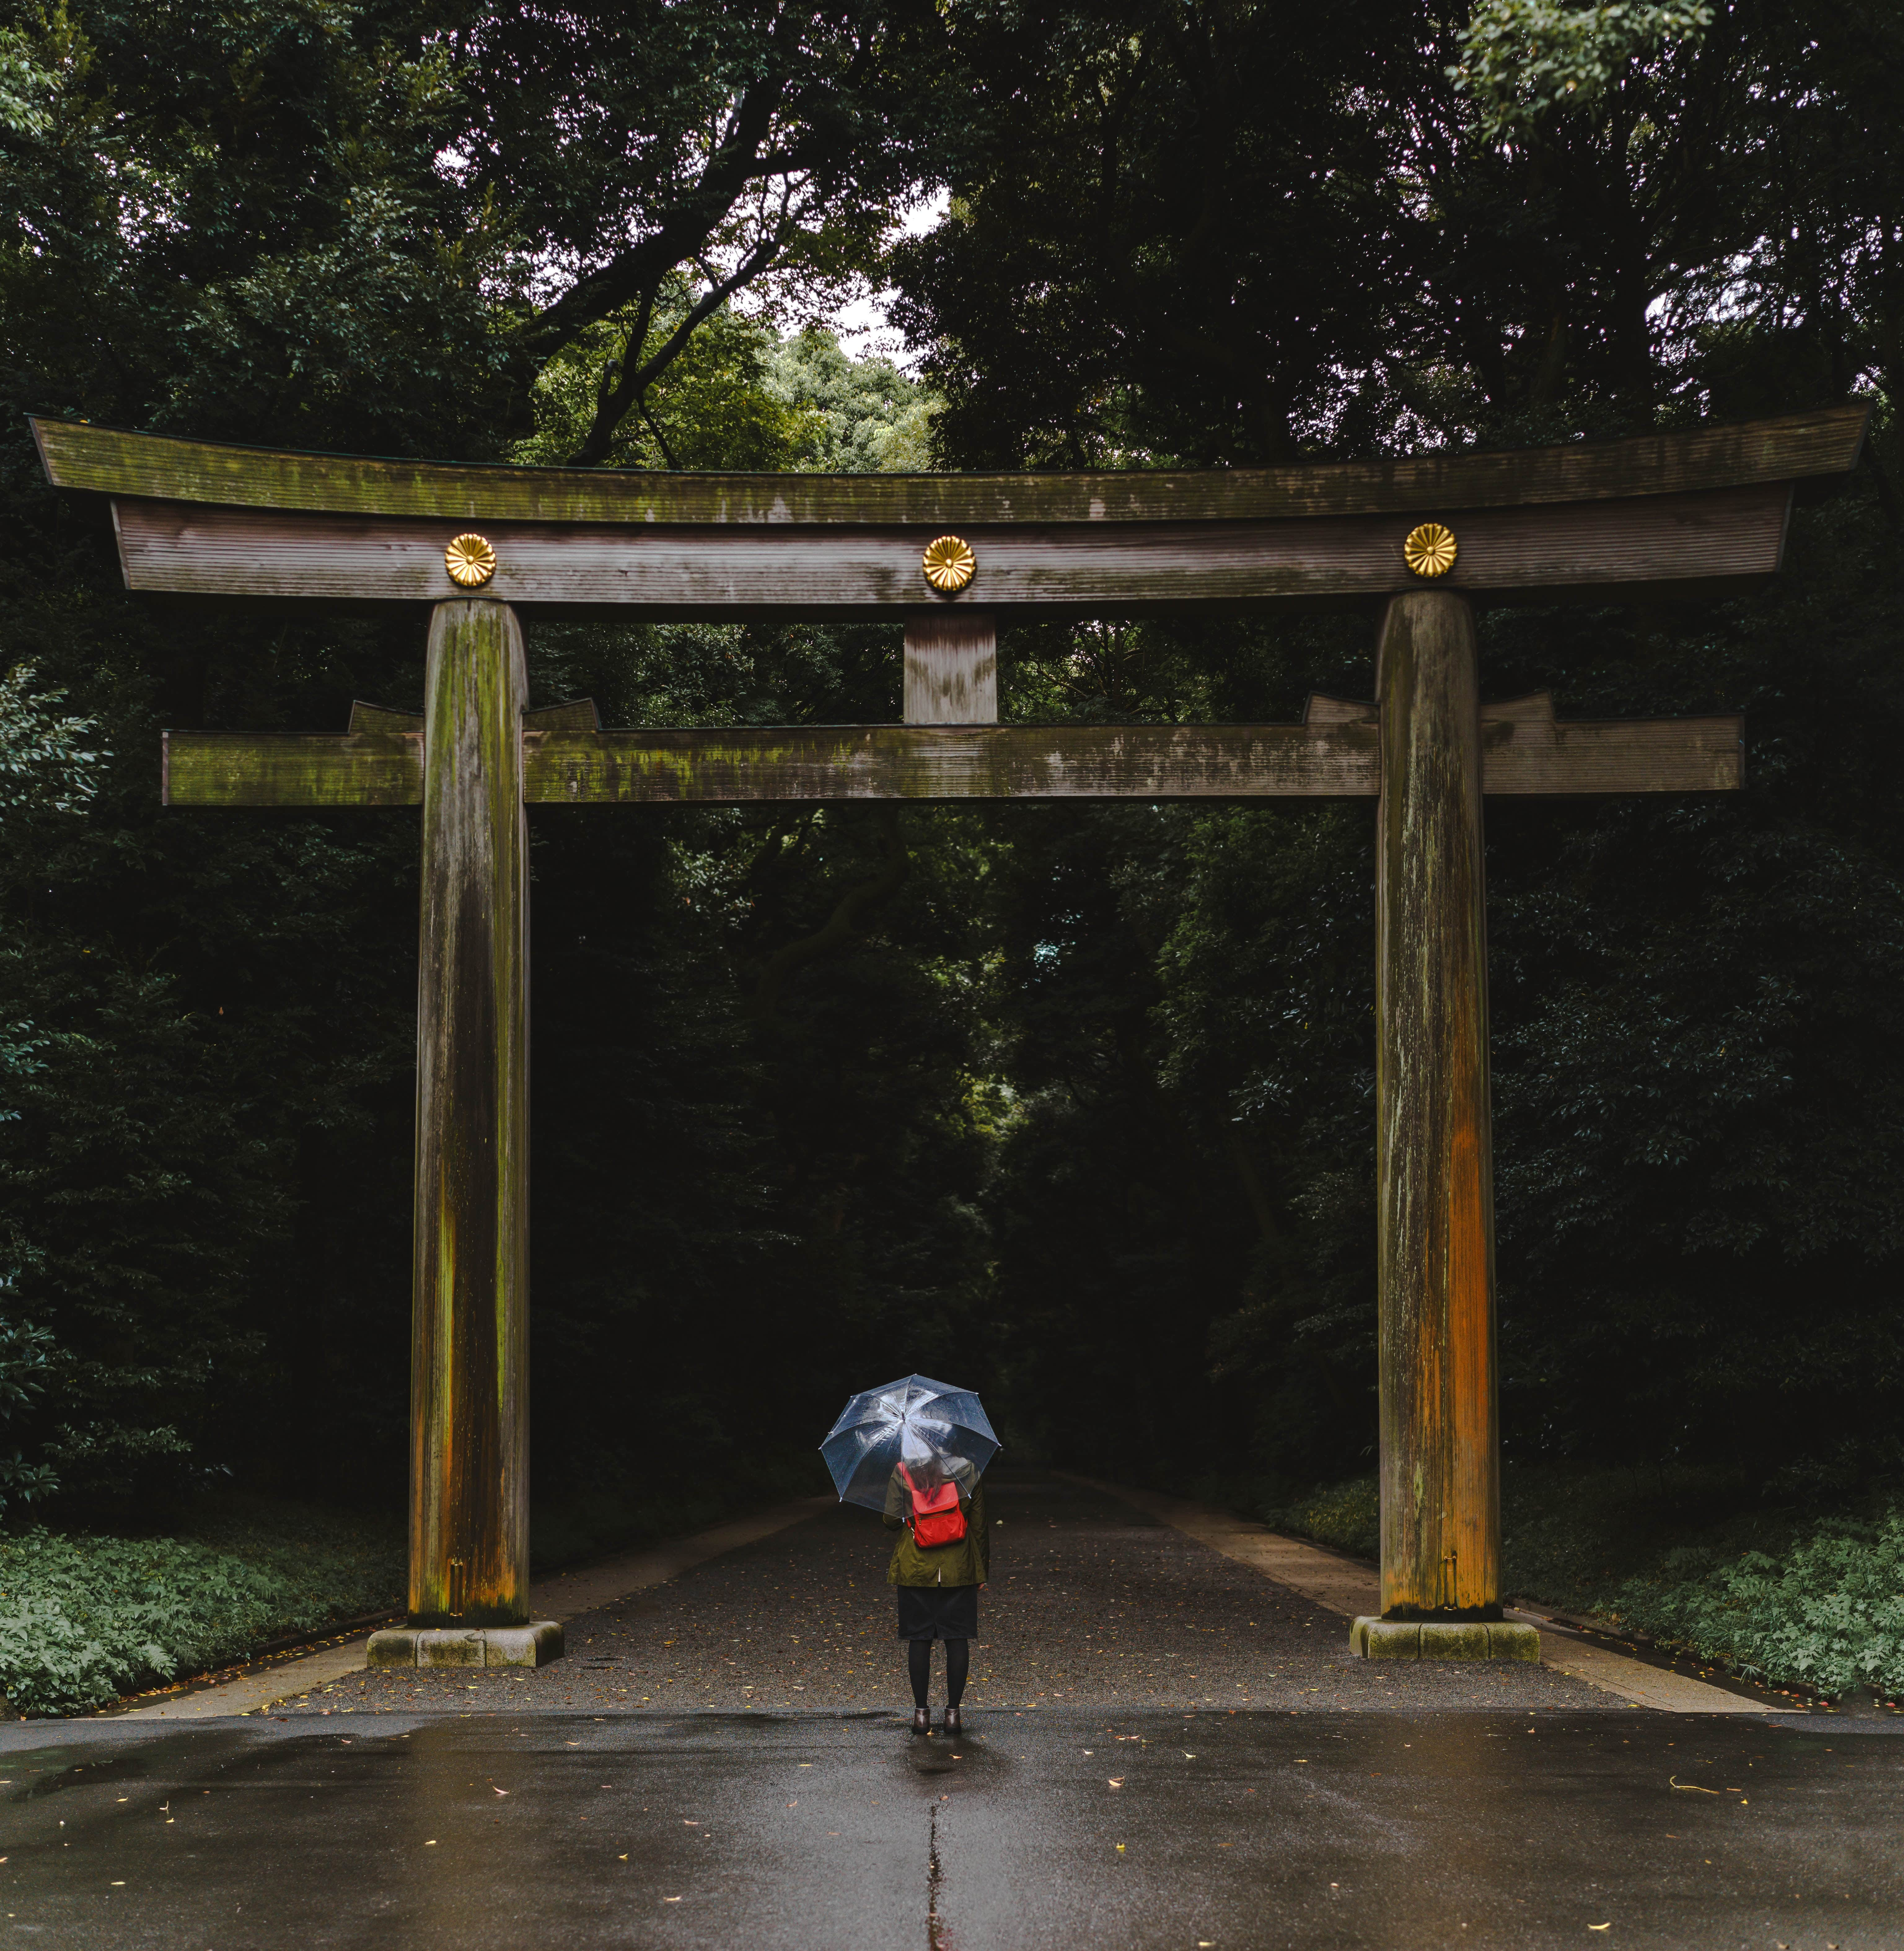 Visiting Meiji Shrine is one of the top things to do in Tokyo